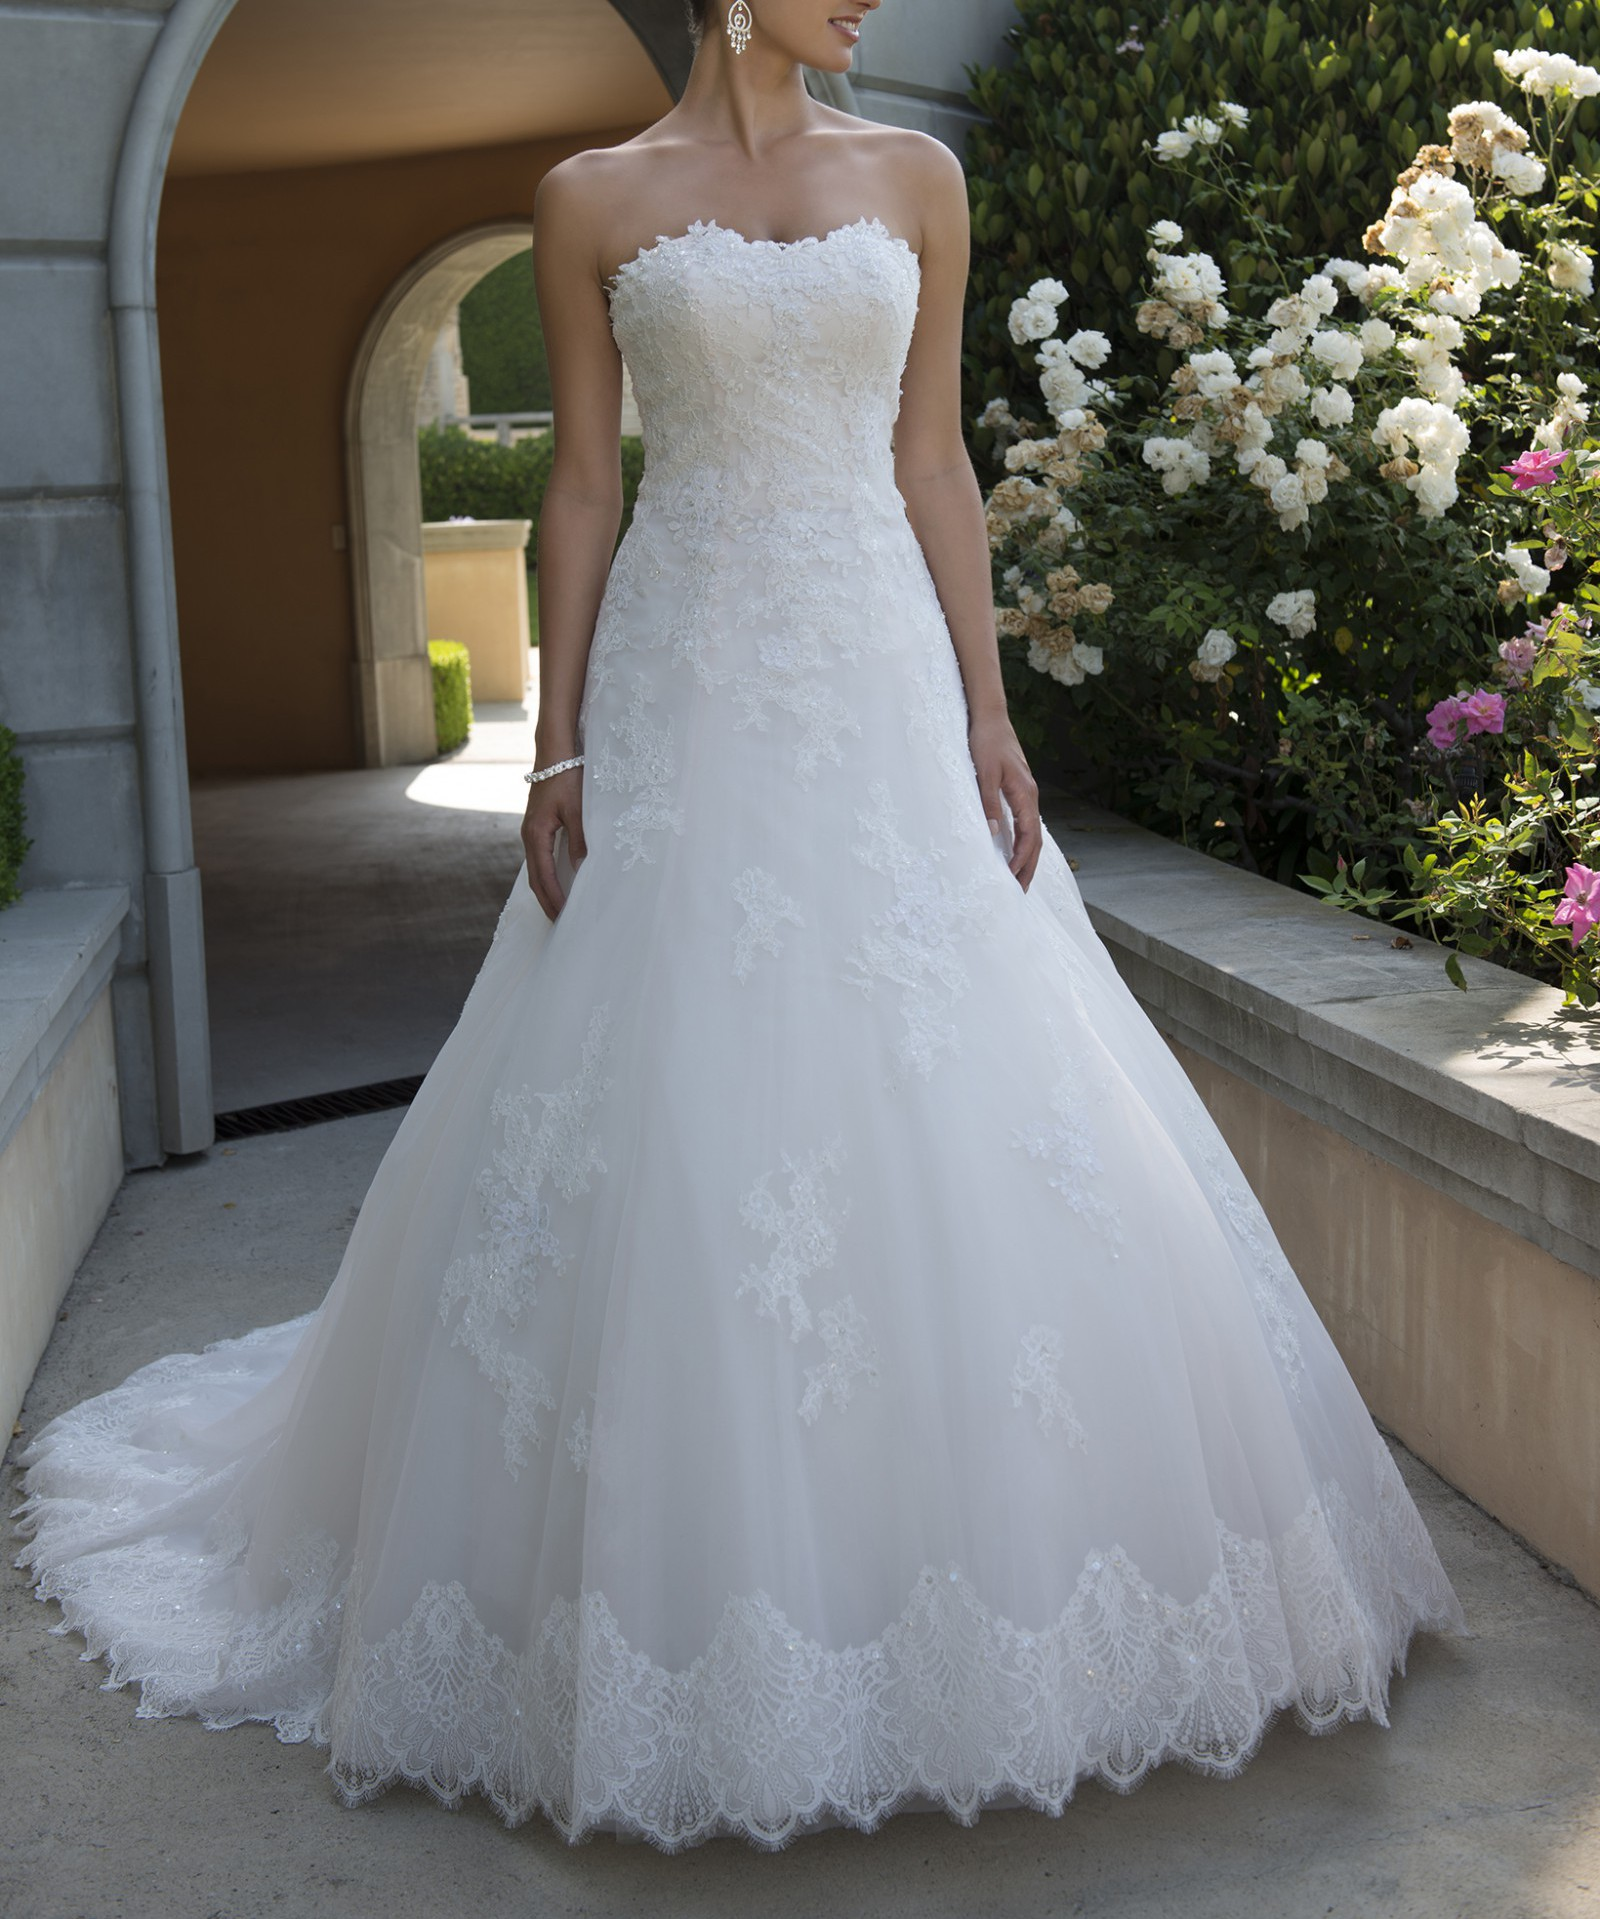 Venus New Wedding Dress On Sale 52% Off